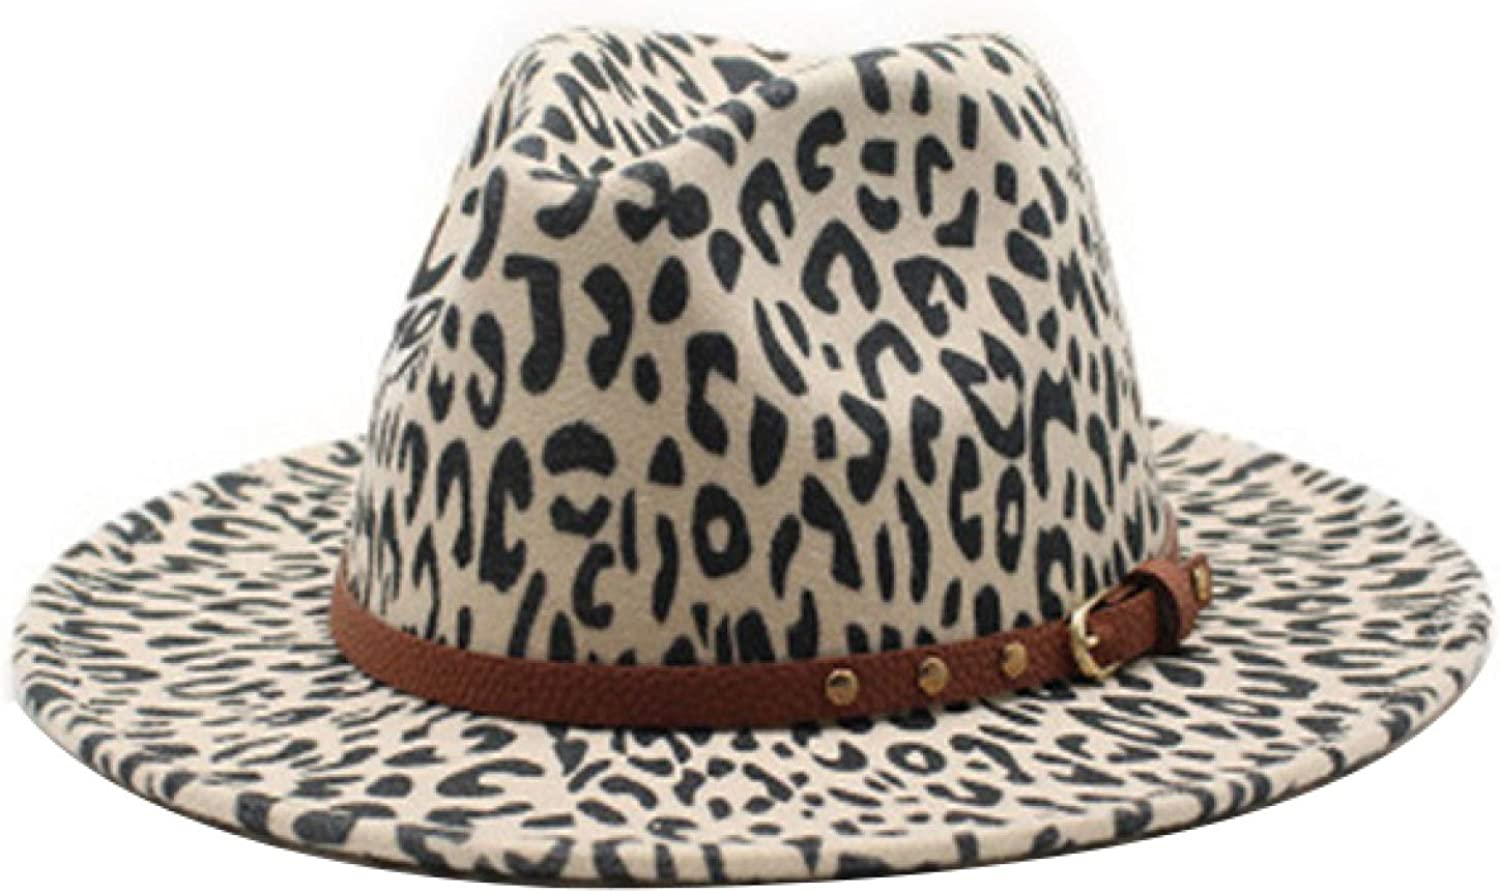 ASO-SLING Trendy Leopard Fedora Hats for Ladies Warm Panama Hat Dress Hats with Leather Belt Decorated for Cold Weather